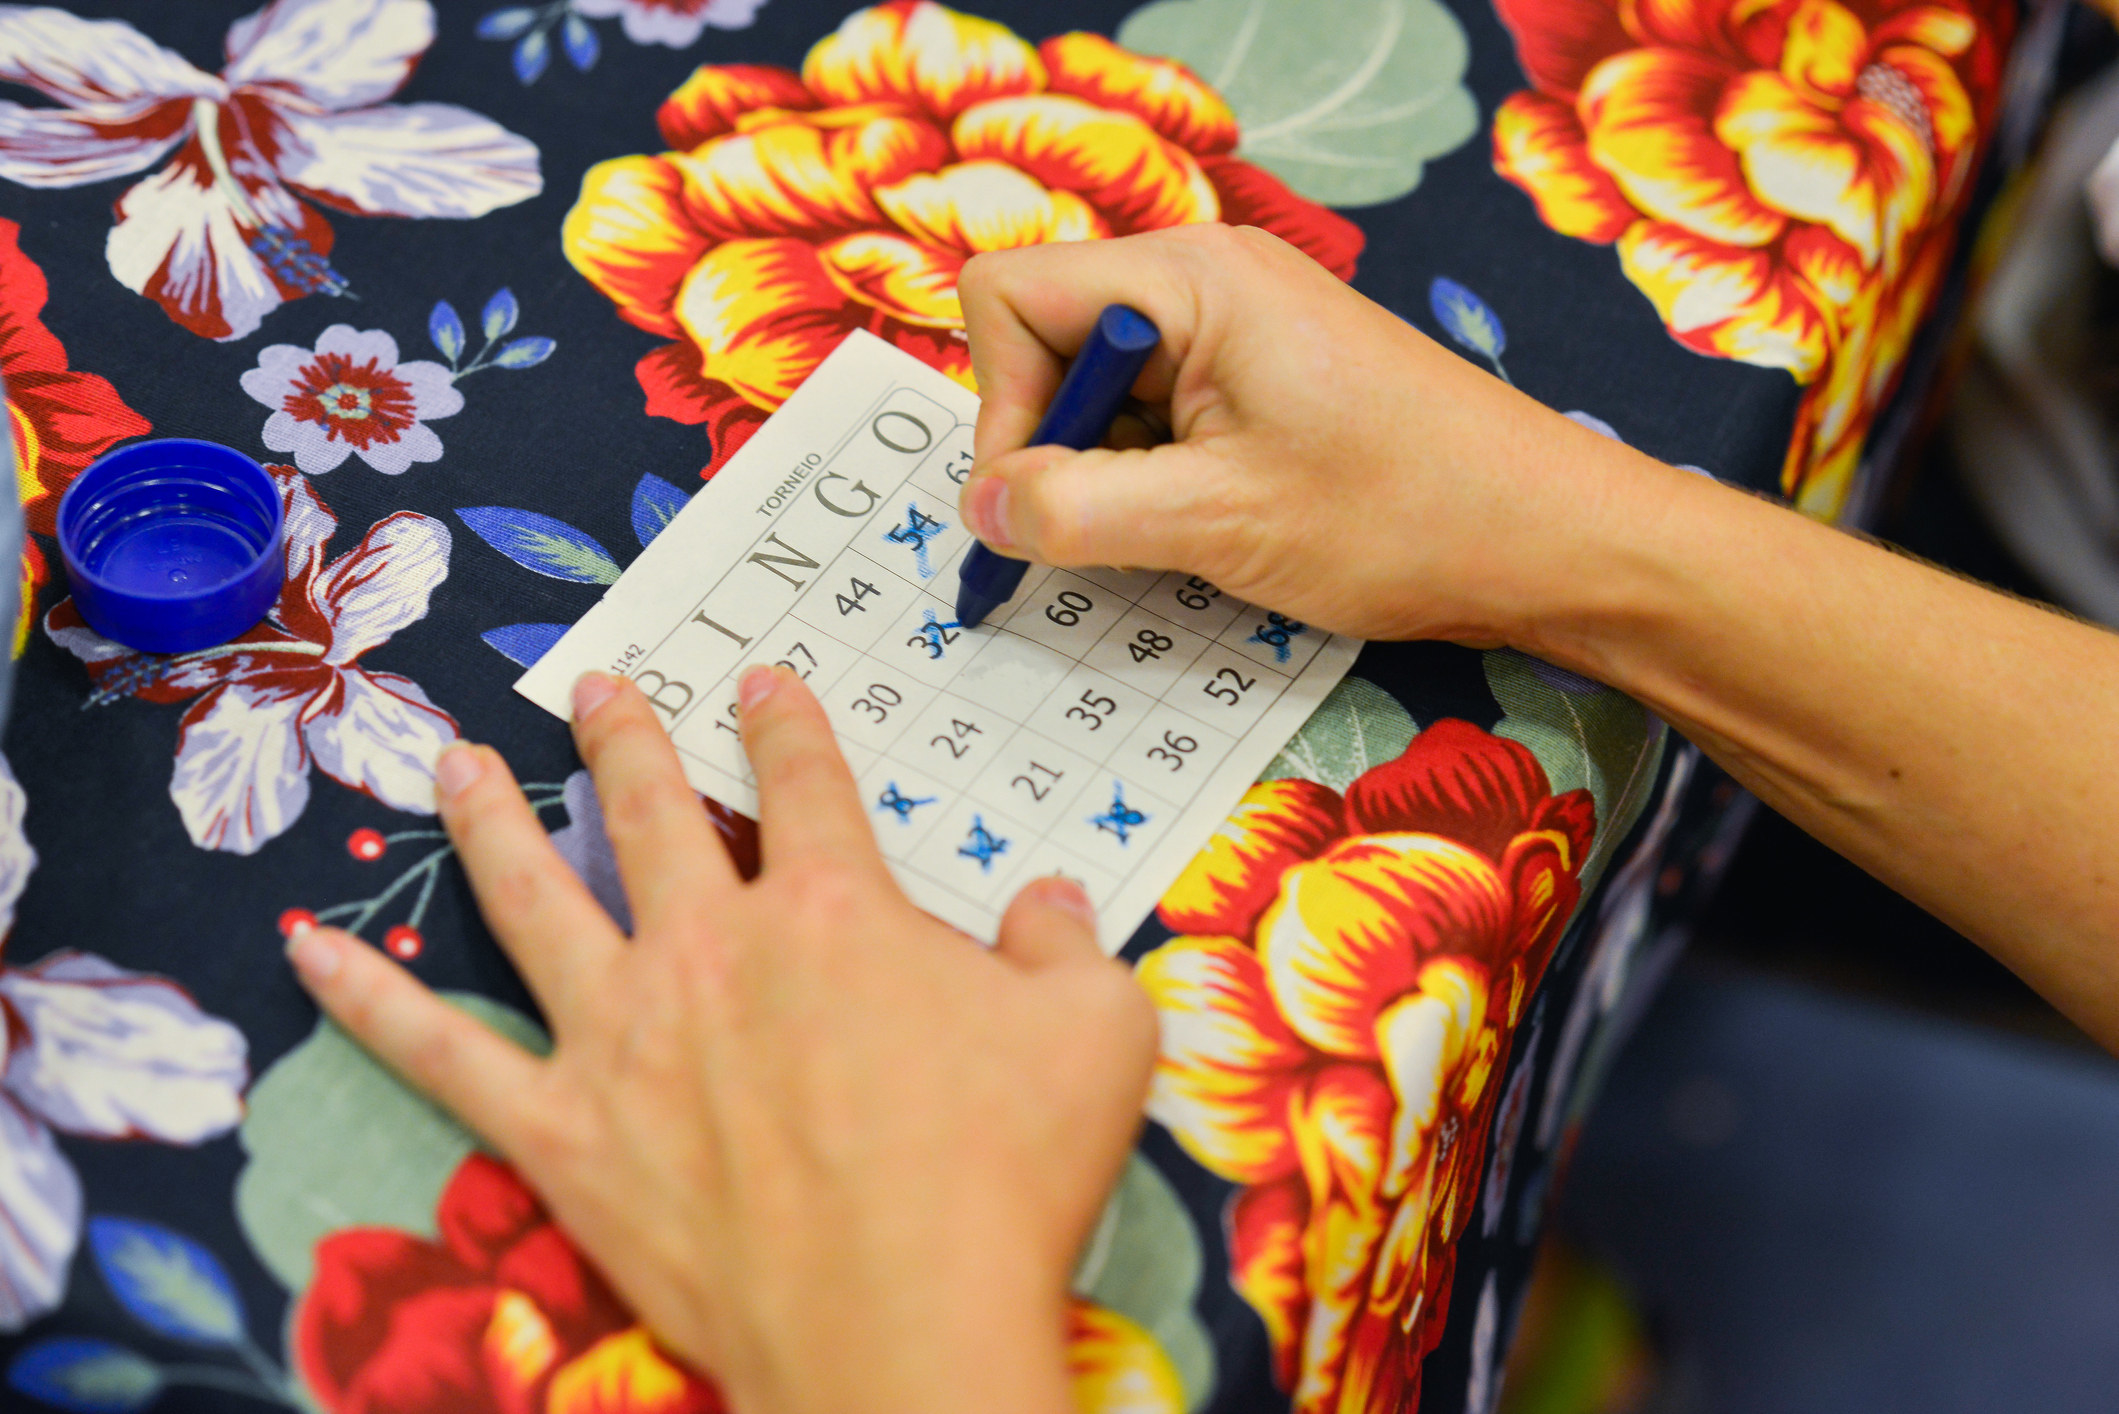 A hand crosses off a number on a Bingo sheet over a floral tablecloth